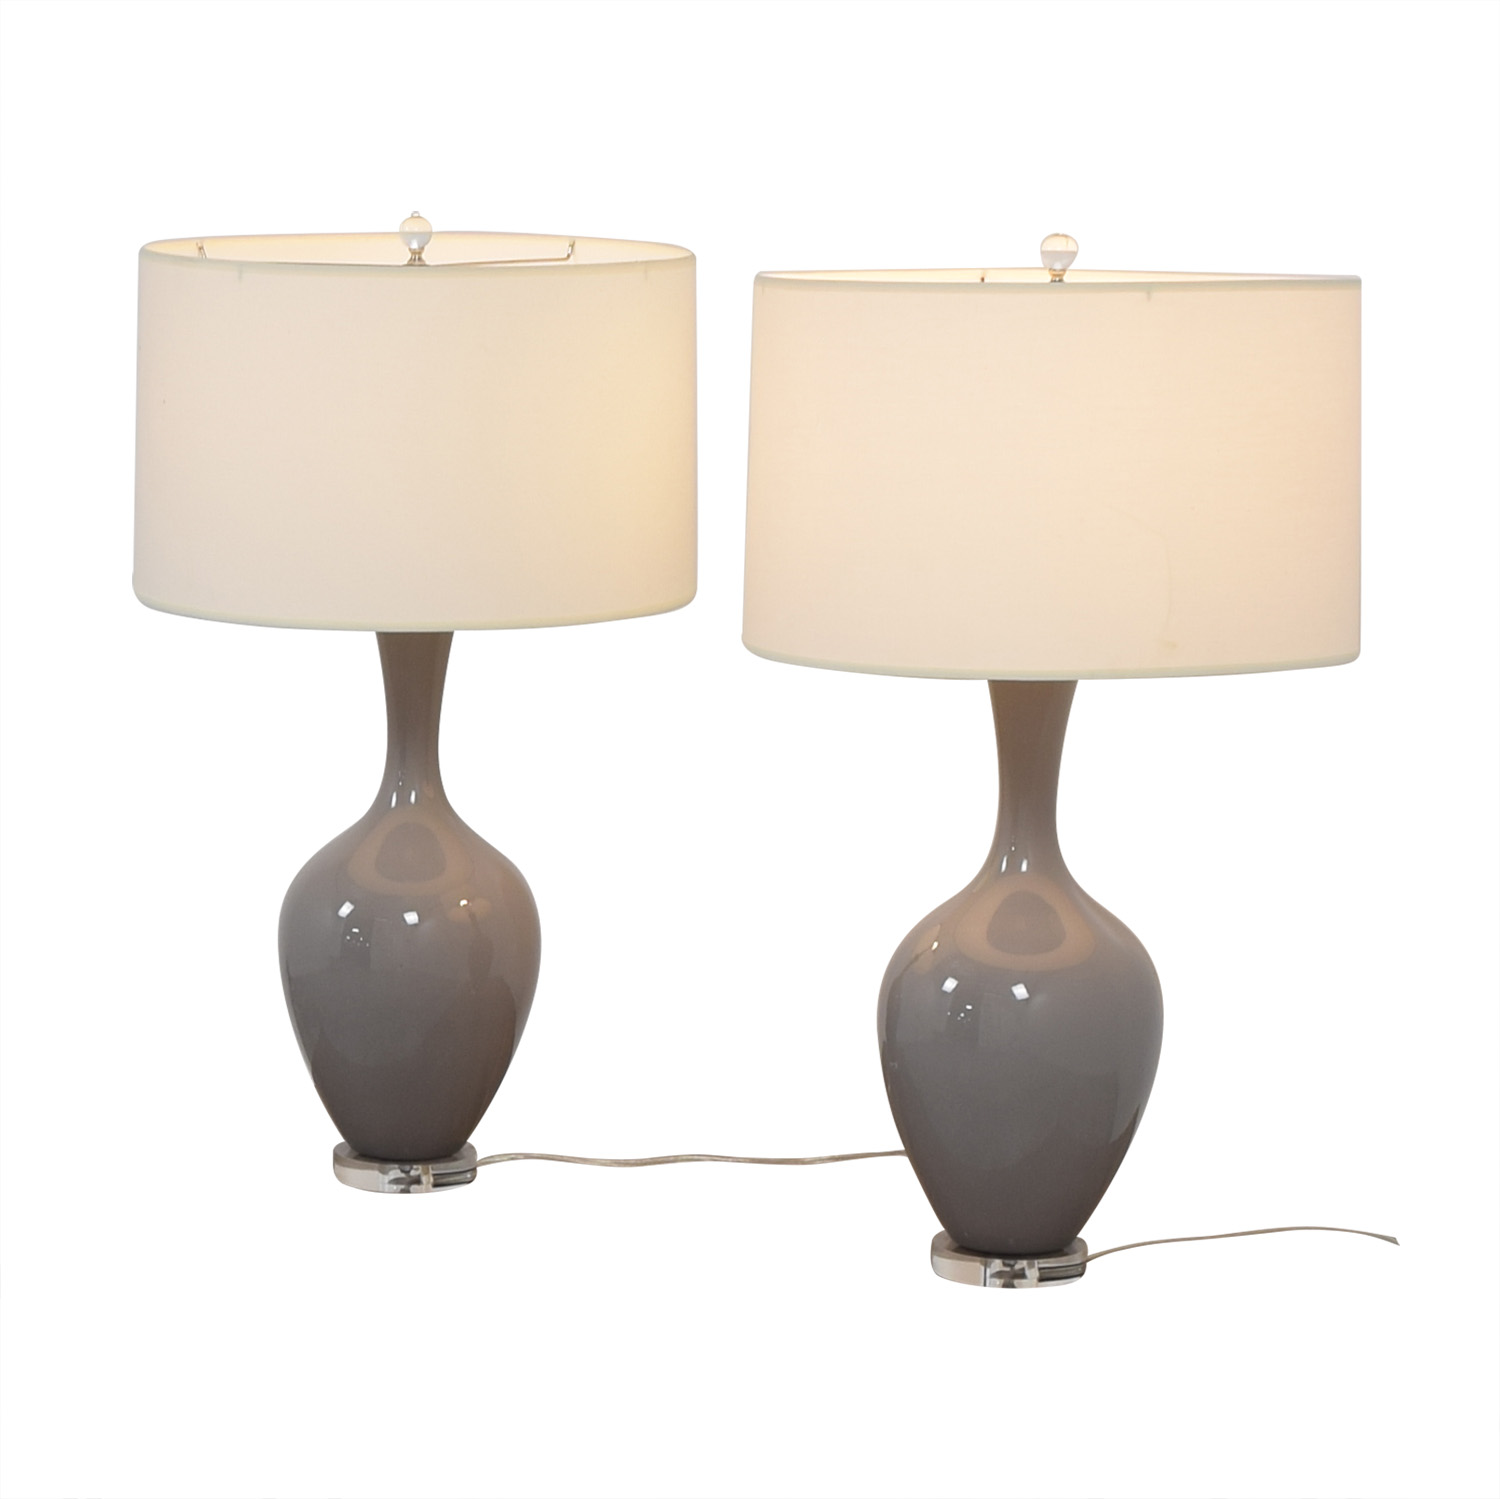 Grey Table Lamps for sale